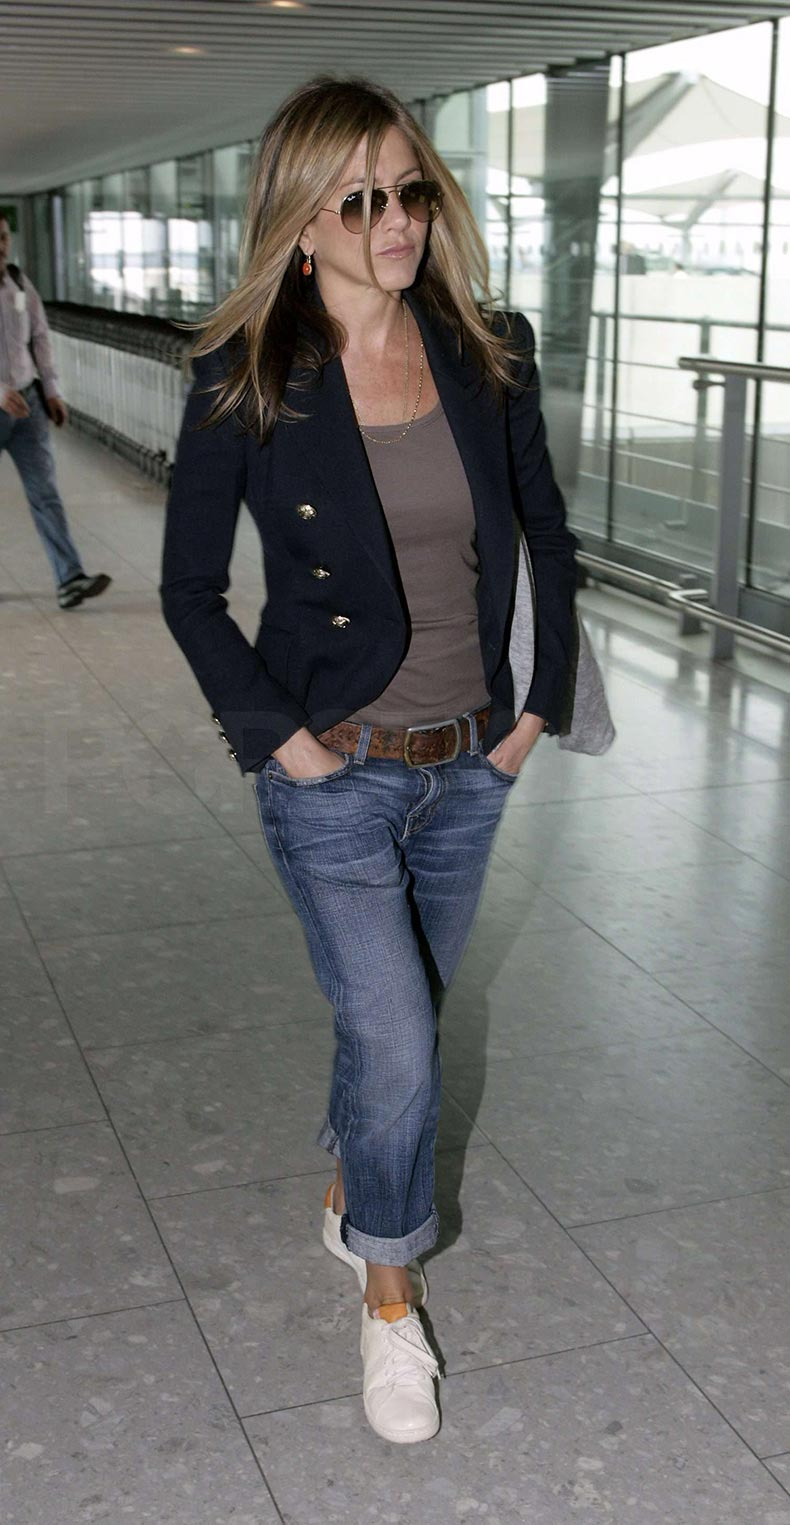 Pictures-Jennifer-Aniston-Leaving-Heathrow